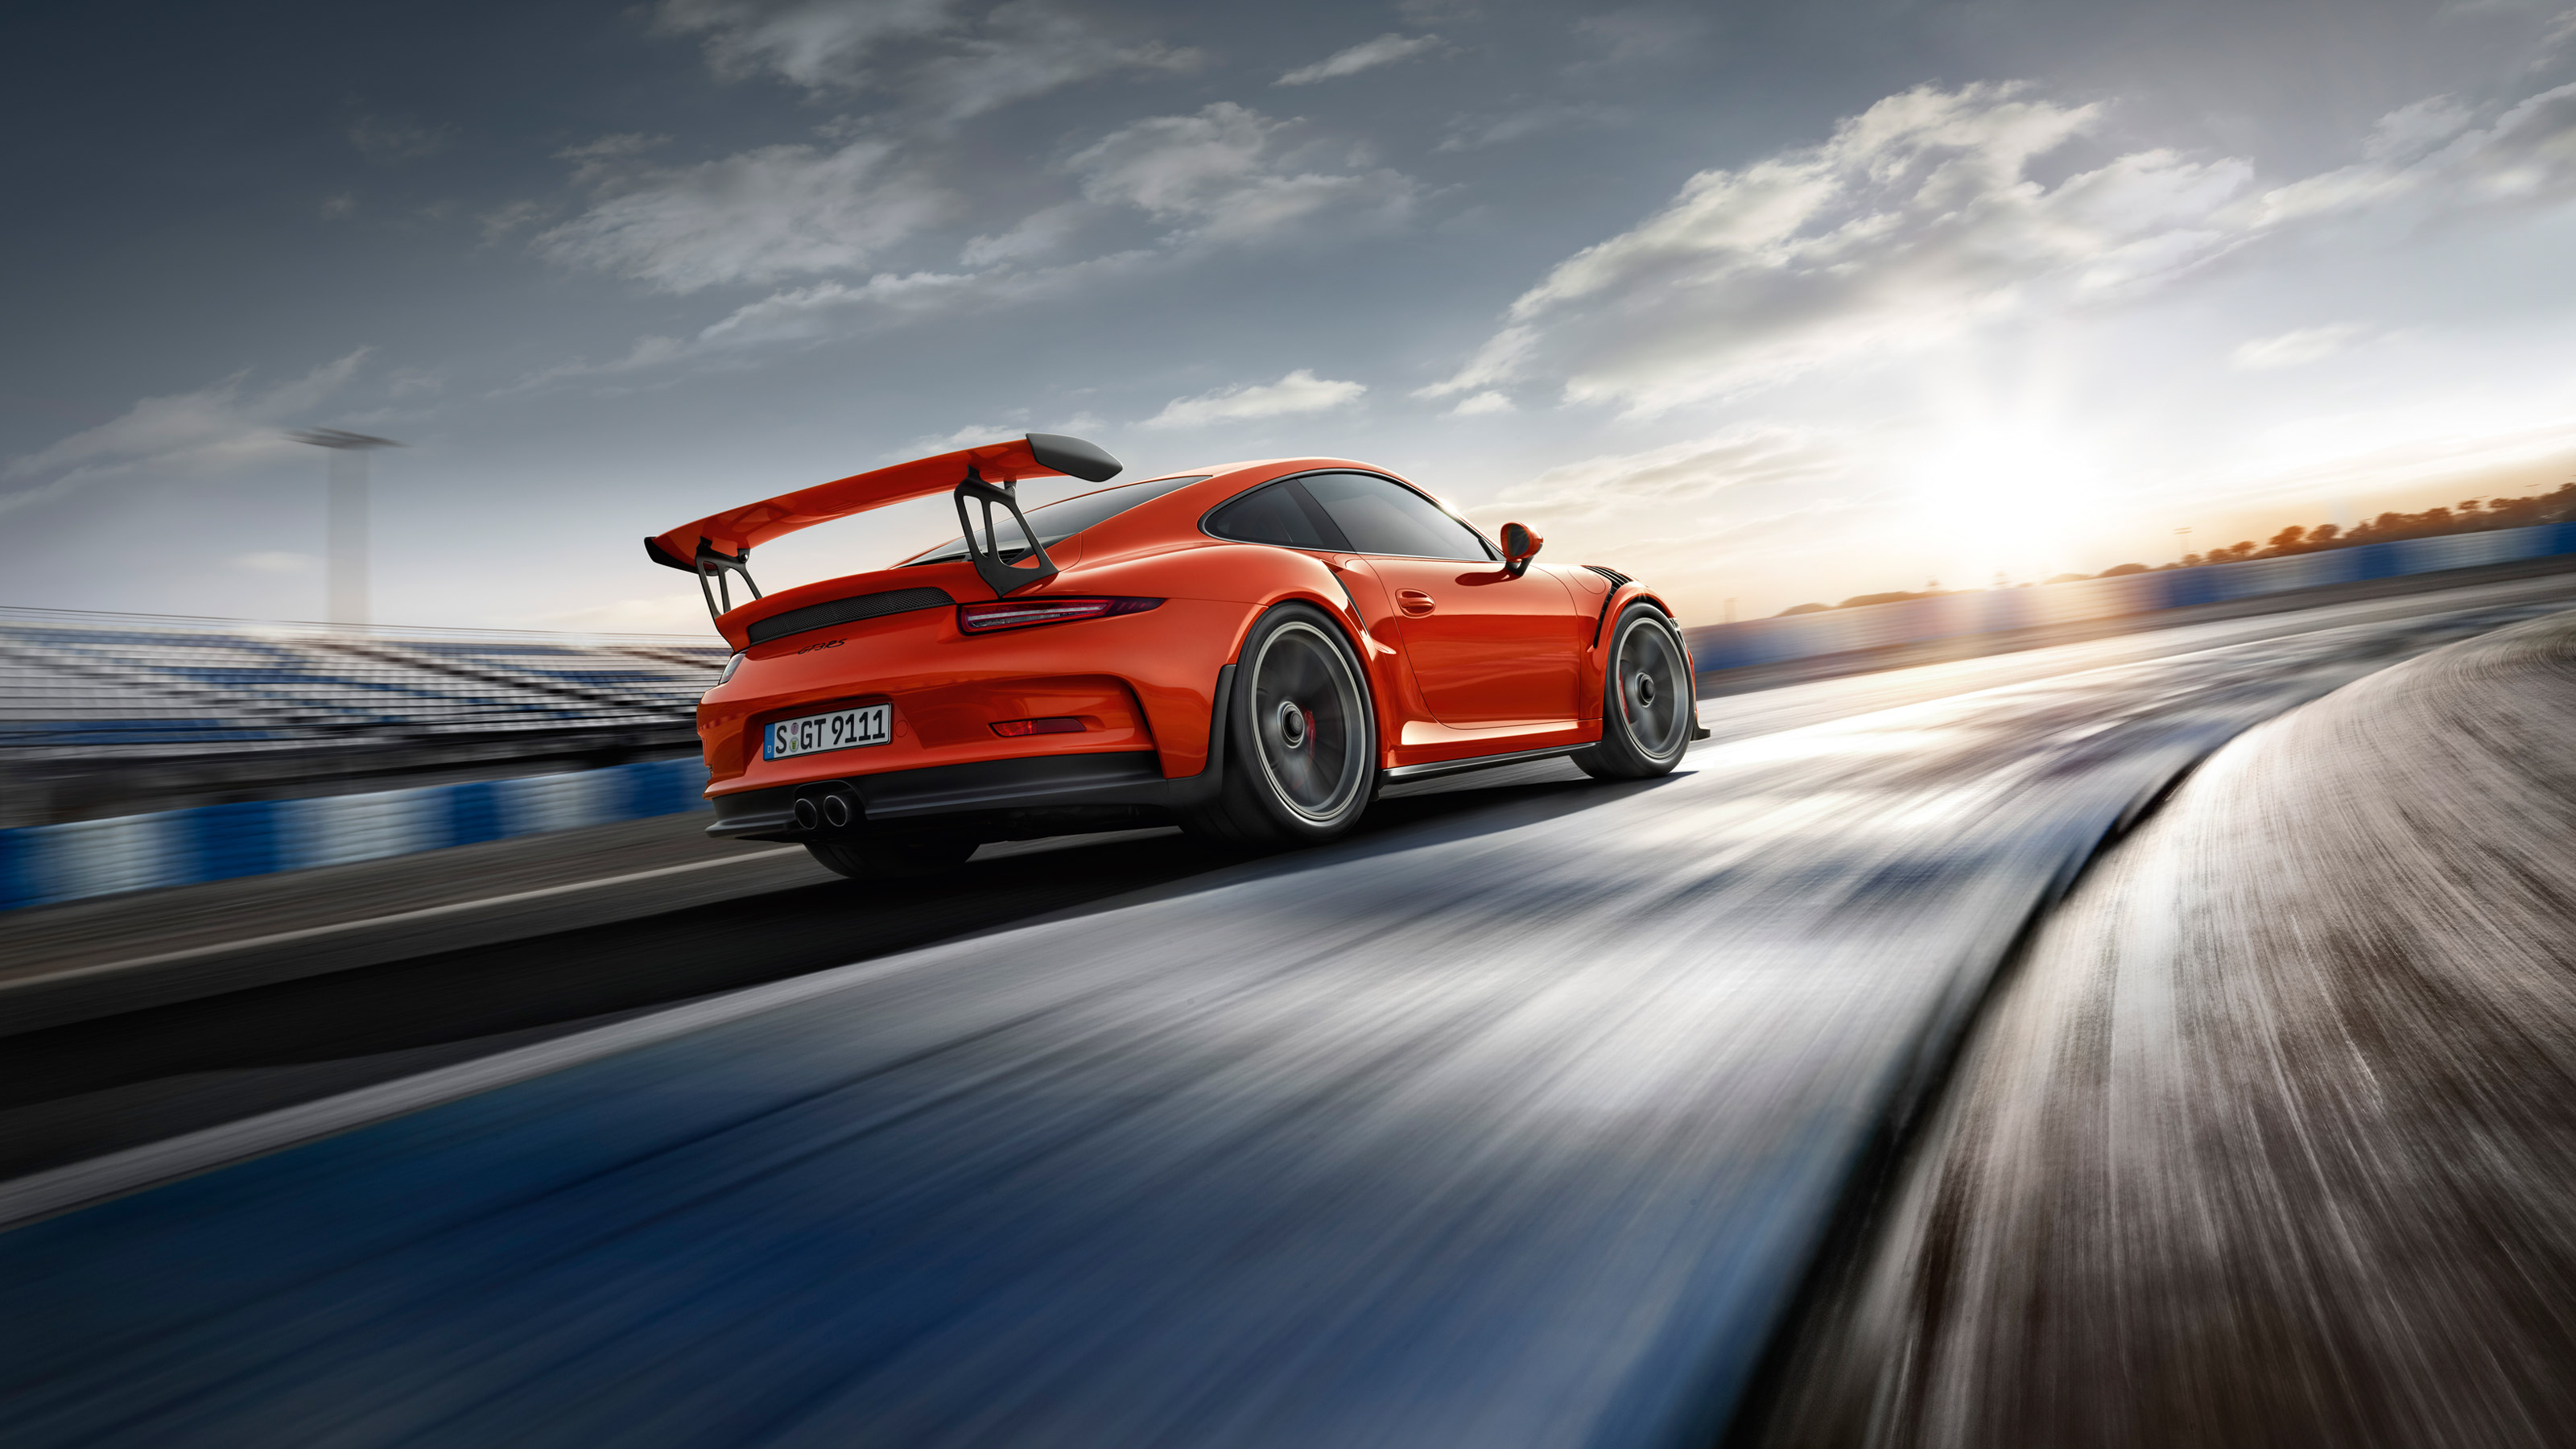 porsche 911 gt3 full hd wallpaper and hintergrund. Black Bedroom Furniture Sets. Home Design Ideas